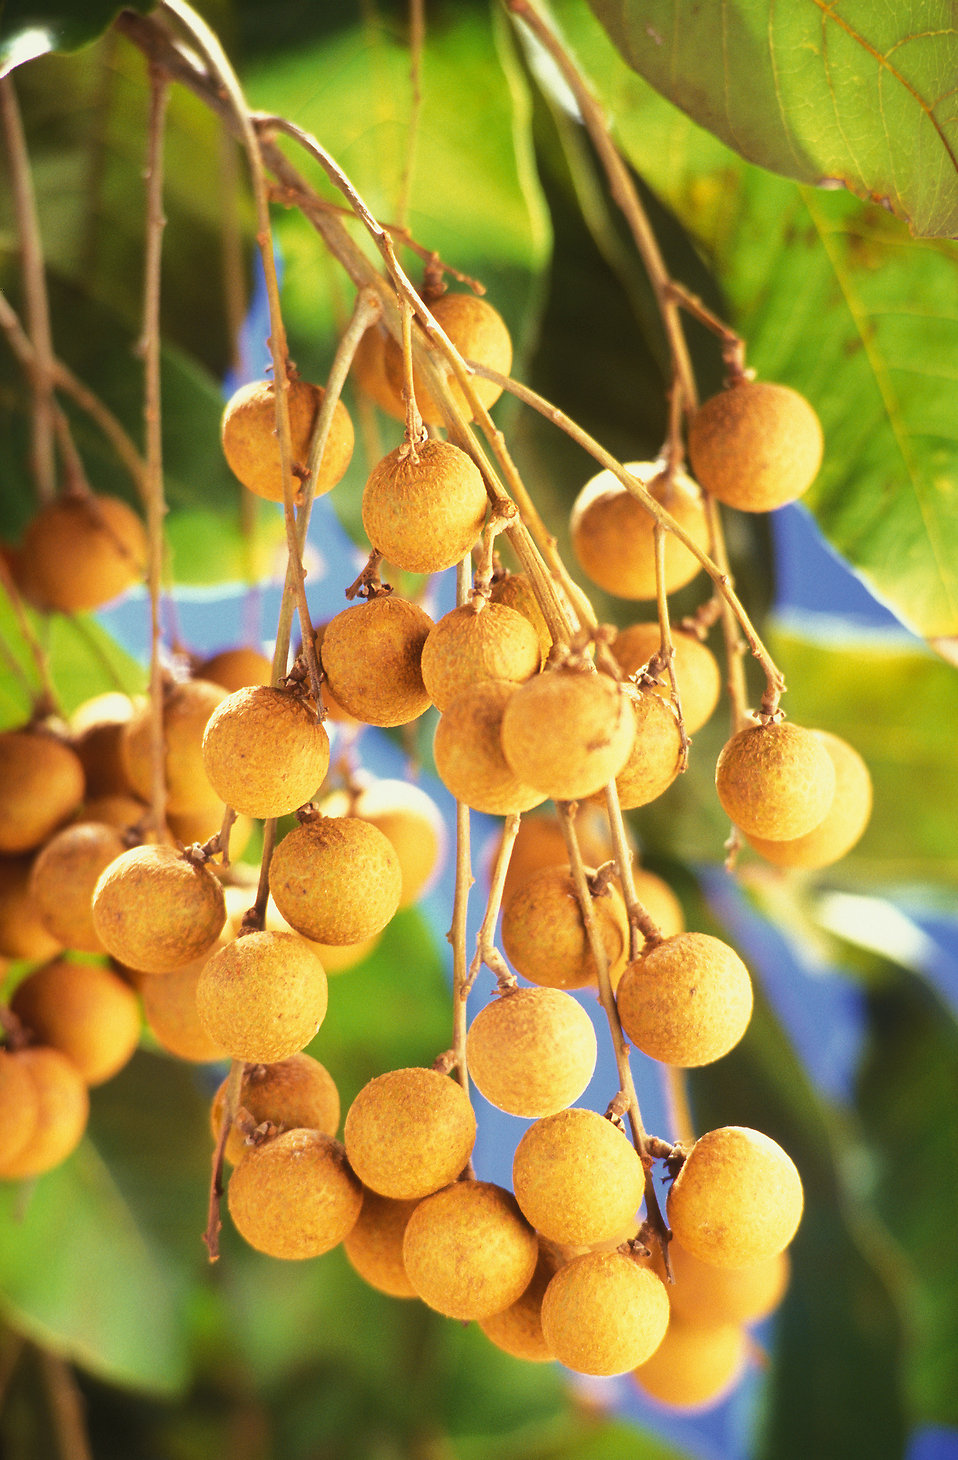 Longans (Dimocarpus longan) growning on a tree : Free Stock Photo